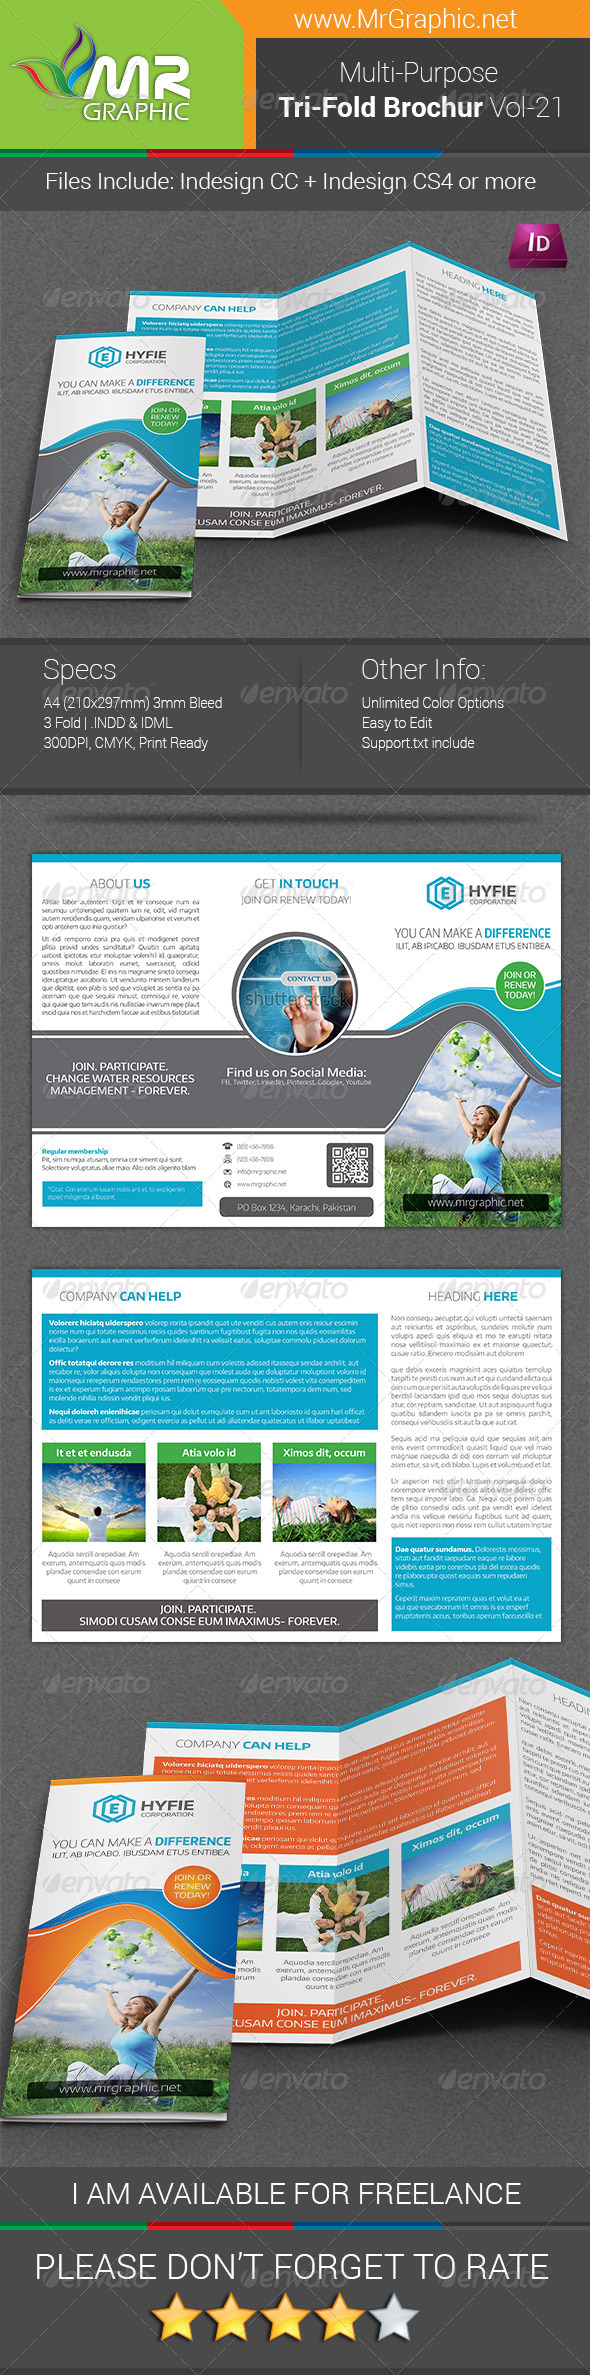 Multipurpose business tri fold brochure vol 21 graphicriver for Tri fold brochure template indesign cs6